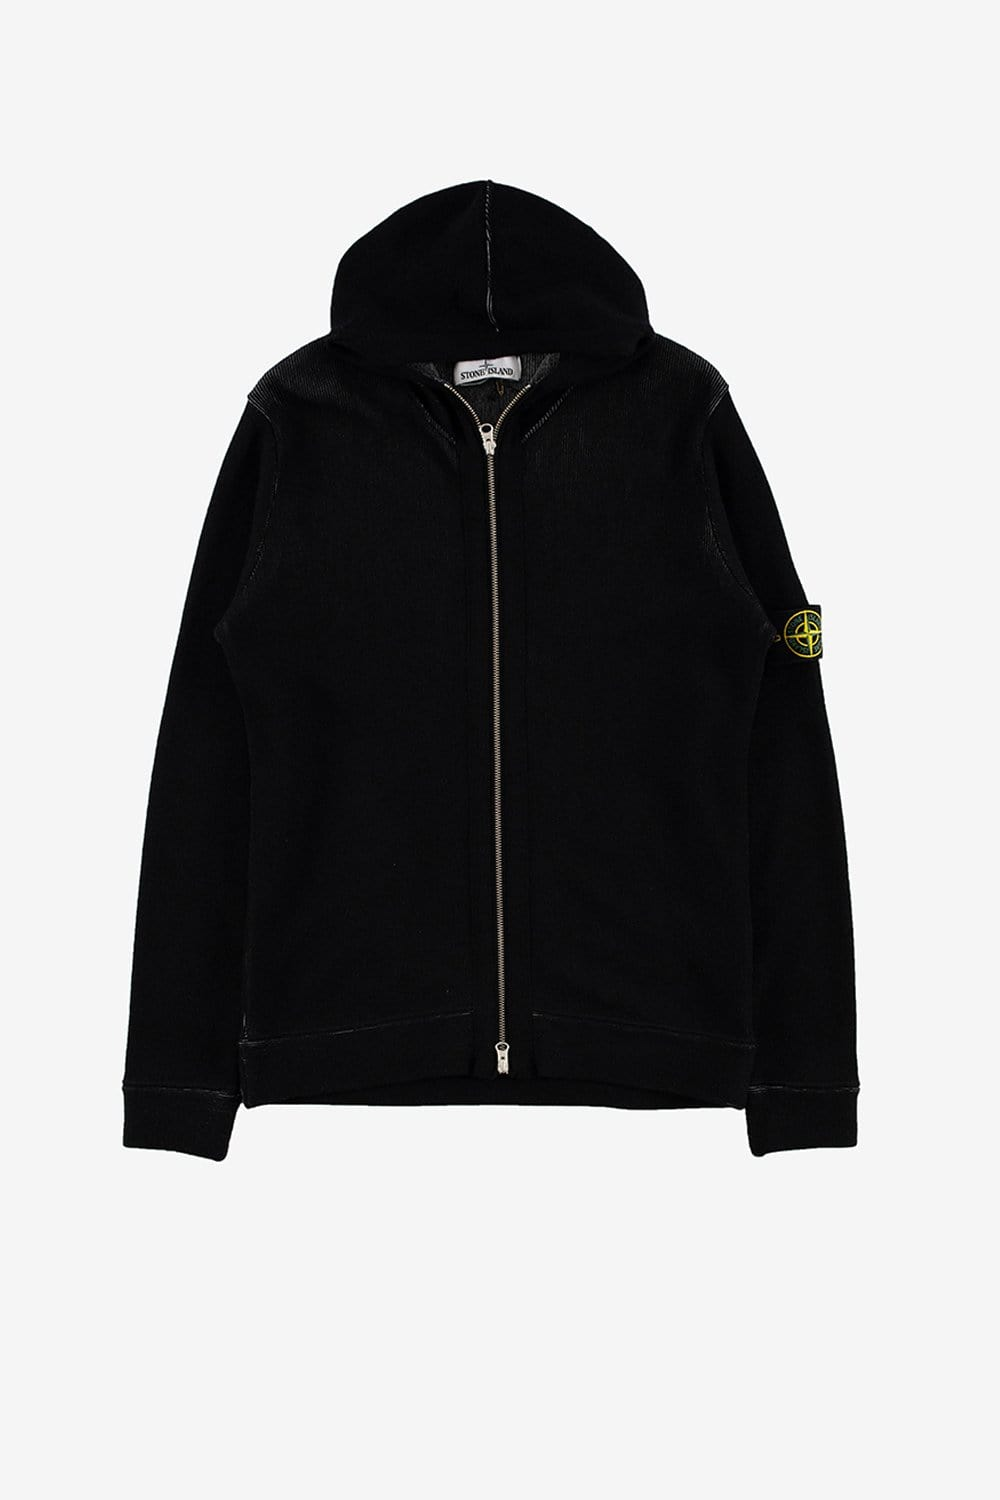 Stone Island Apparel Knit Hooded Sweater